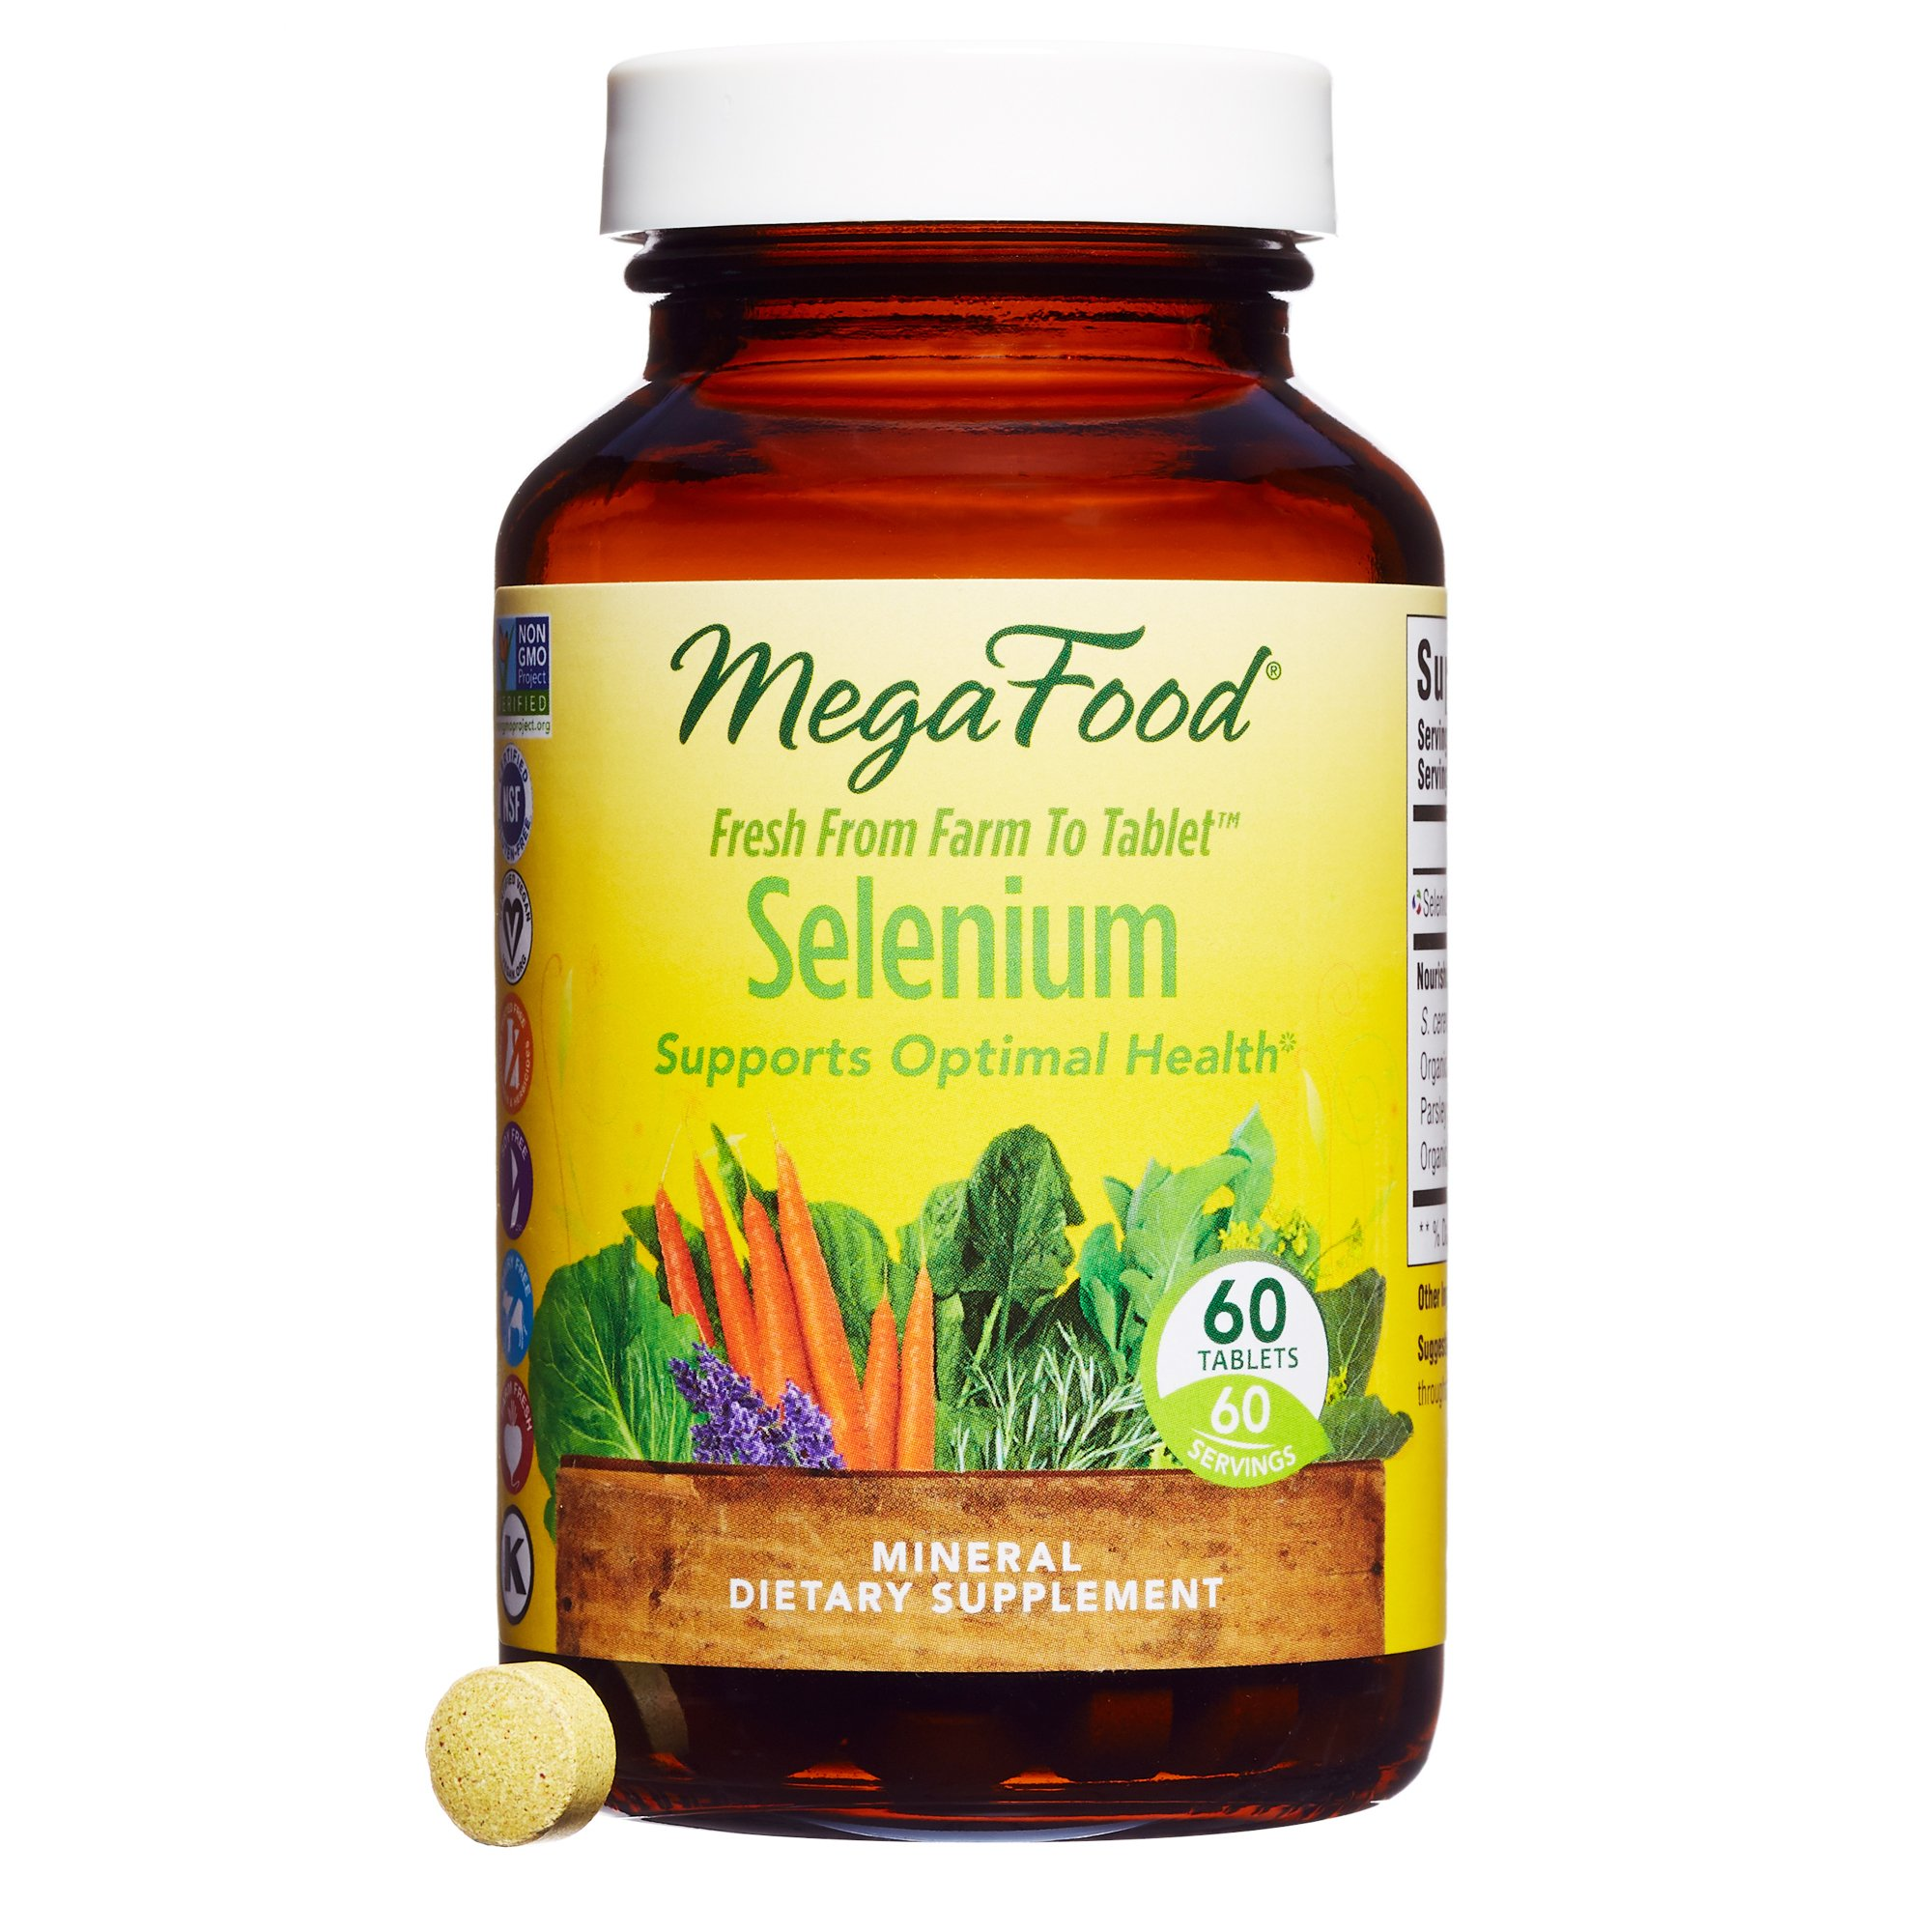 MegaFood - Selenium, Mineral Support for Immune Health Enhanced with Organic Foods and Botanicals, Vegan, Gluten-Free, Non-GMO, 60 Tablets (FFP)